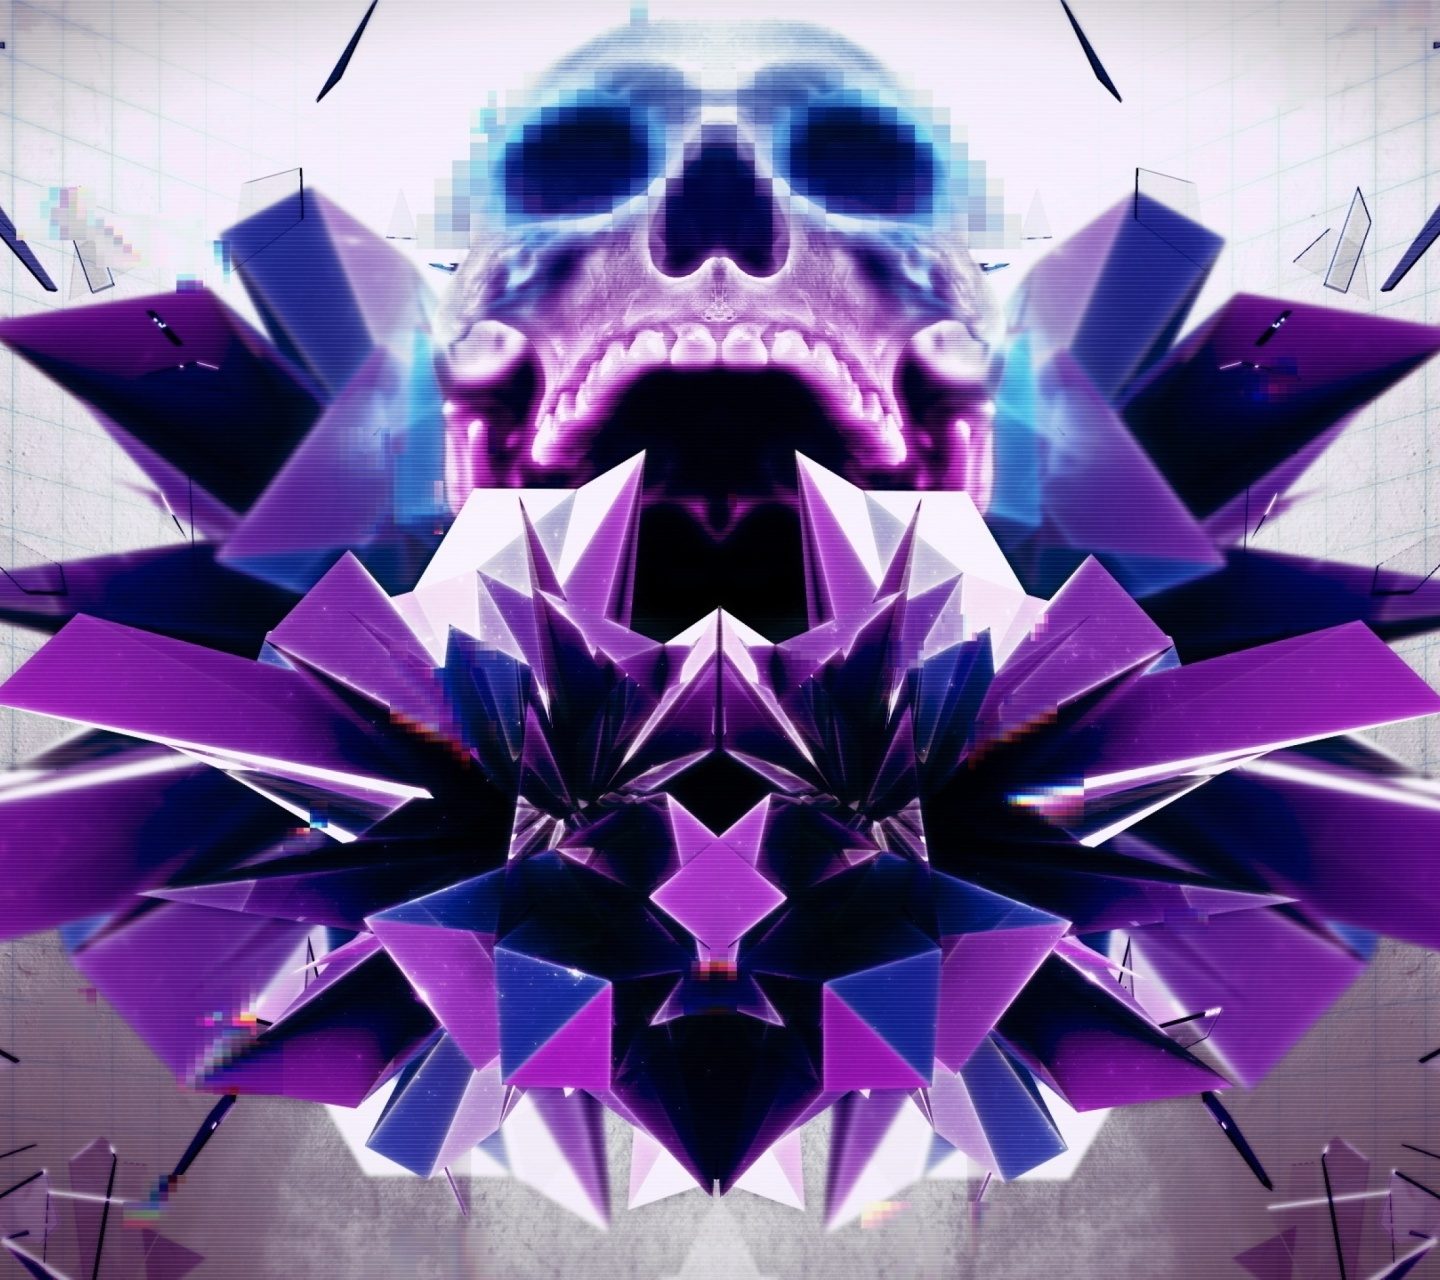 Abstract framed Skull screenshot #1 1440x1280